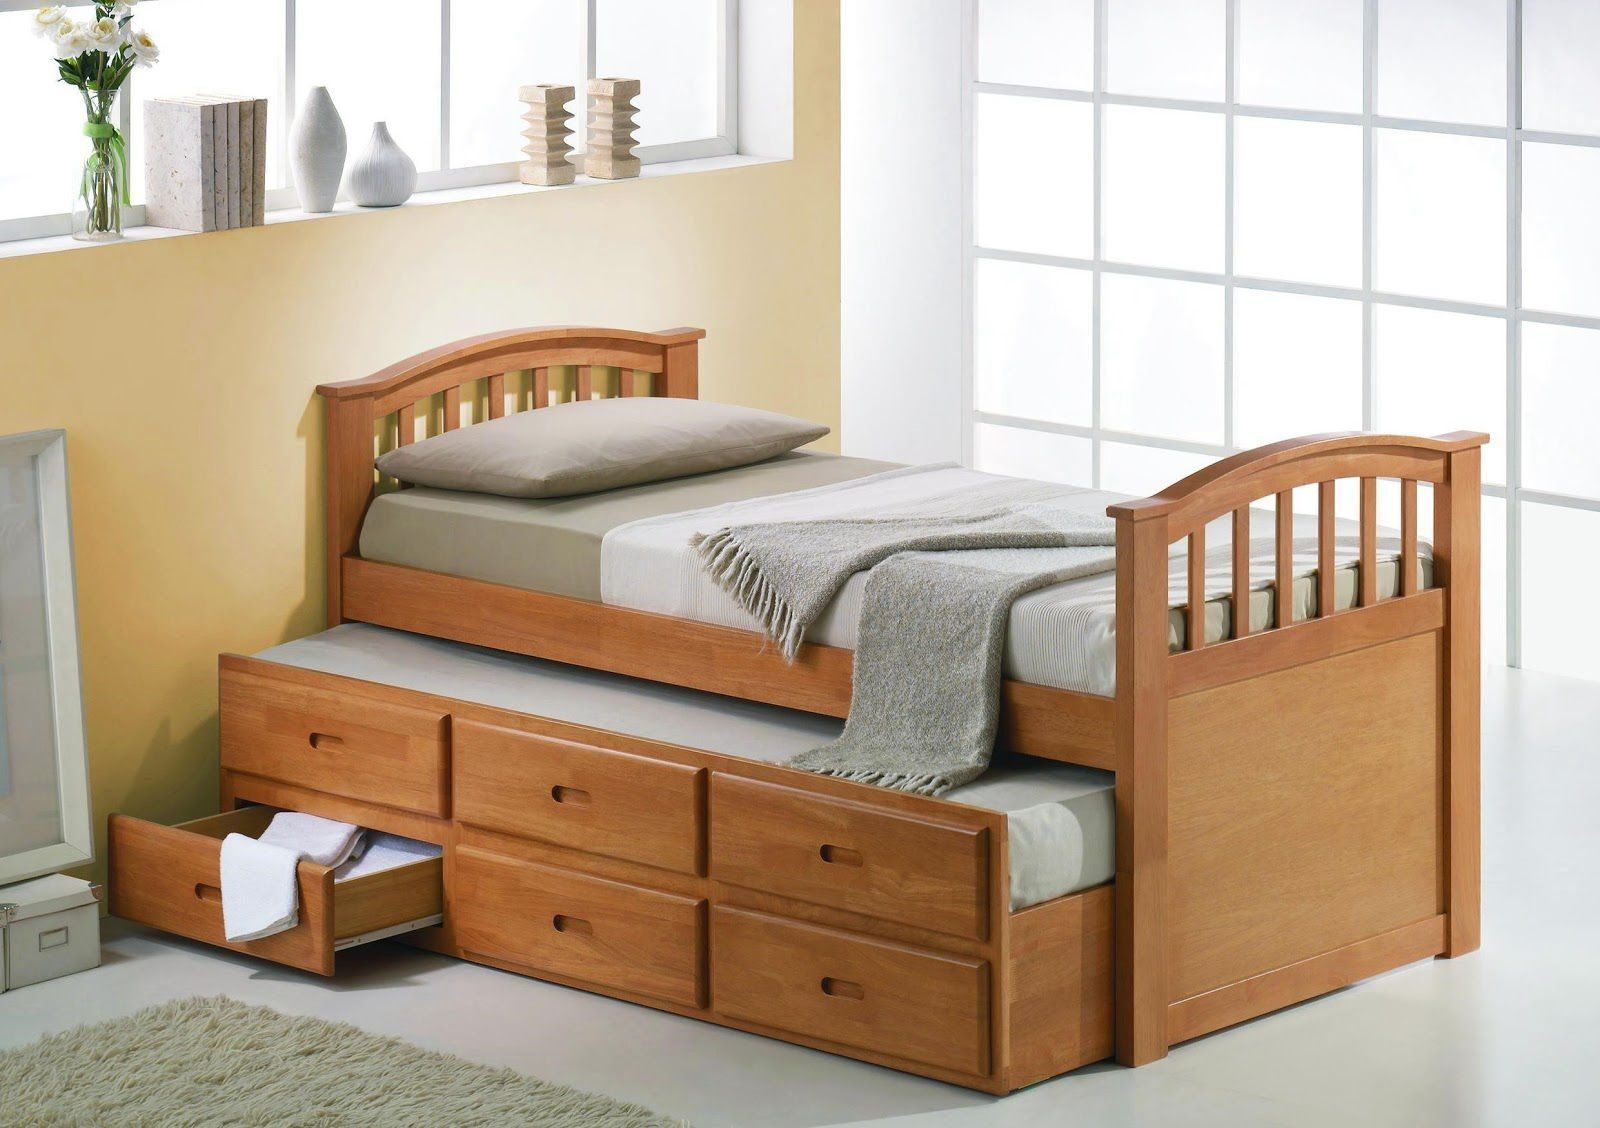 Buying Tips For Single Bed Frame Bed Designs With Storage Bed With Drawers Underneath Bed Design